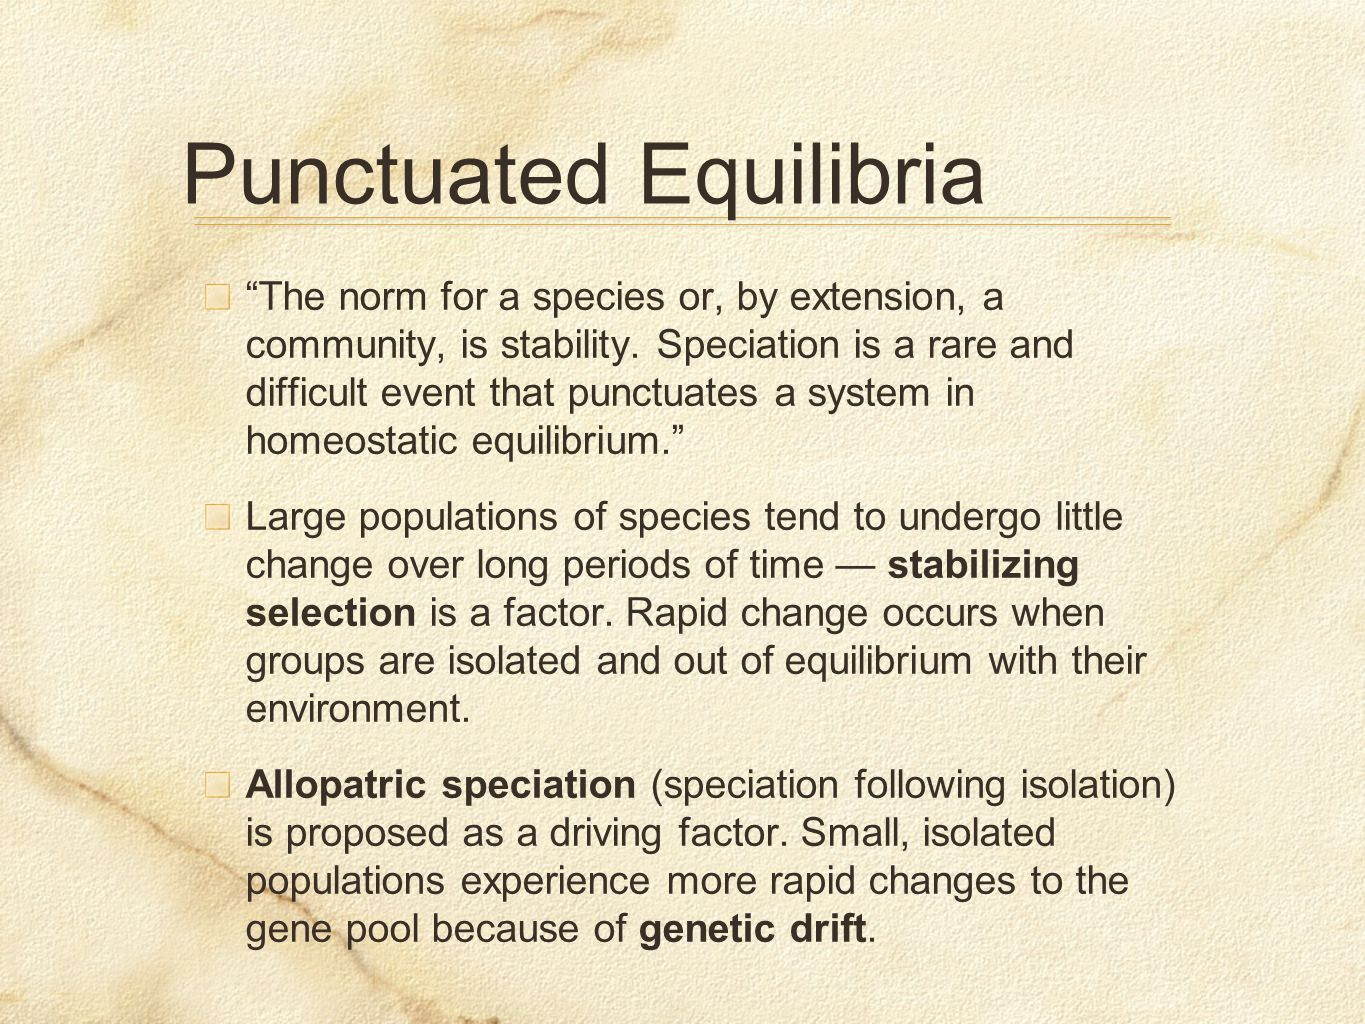 Punctuated Equilibria The norm for a species or, by extension, a community, is stability.